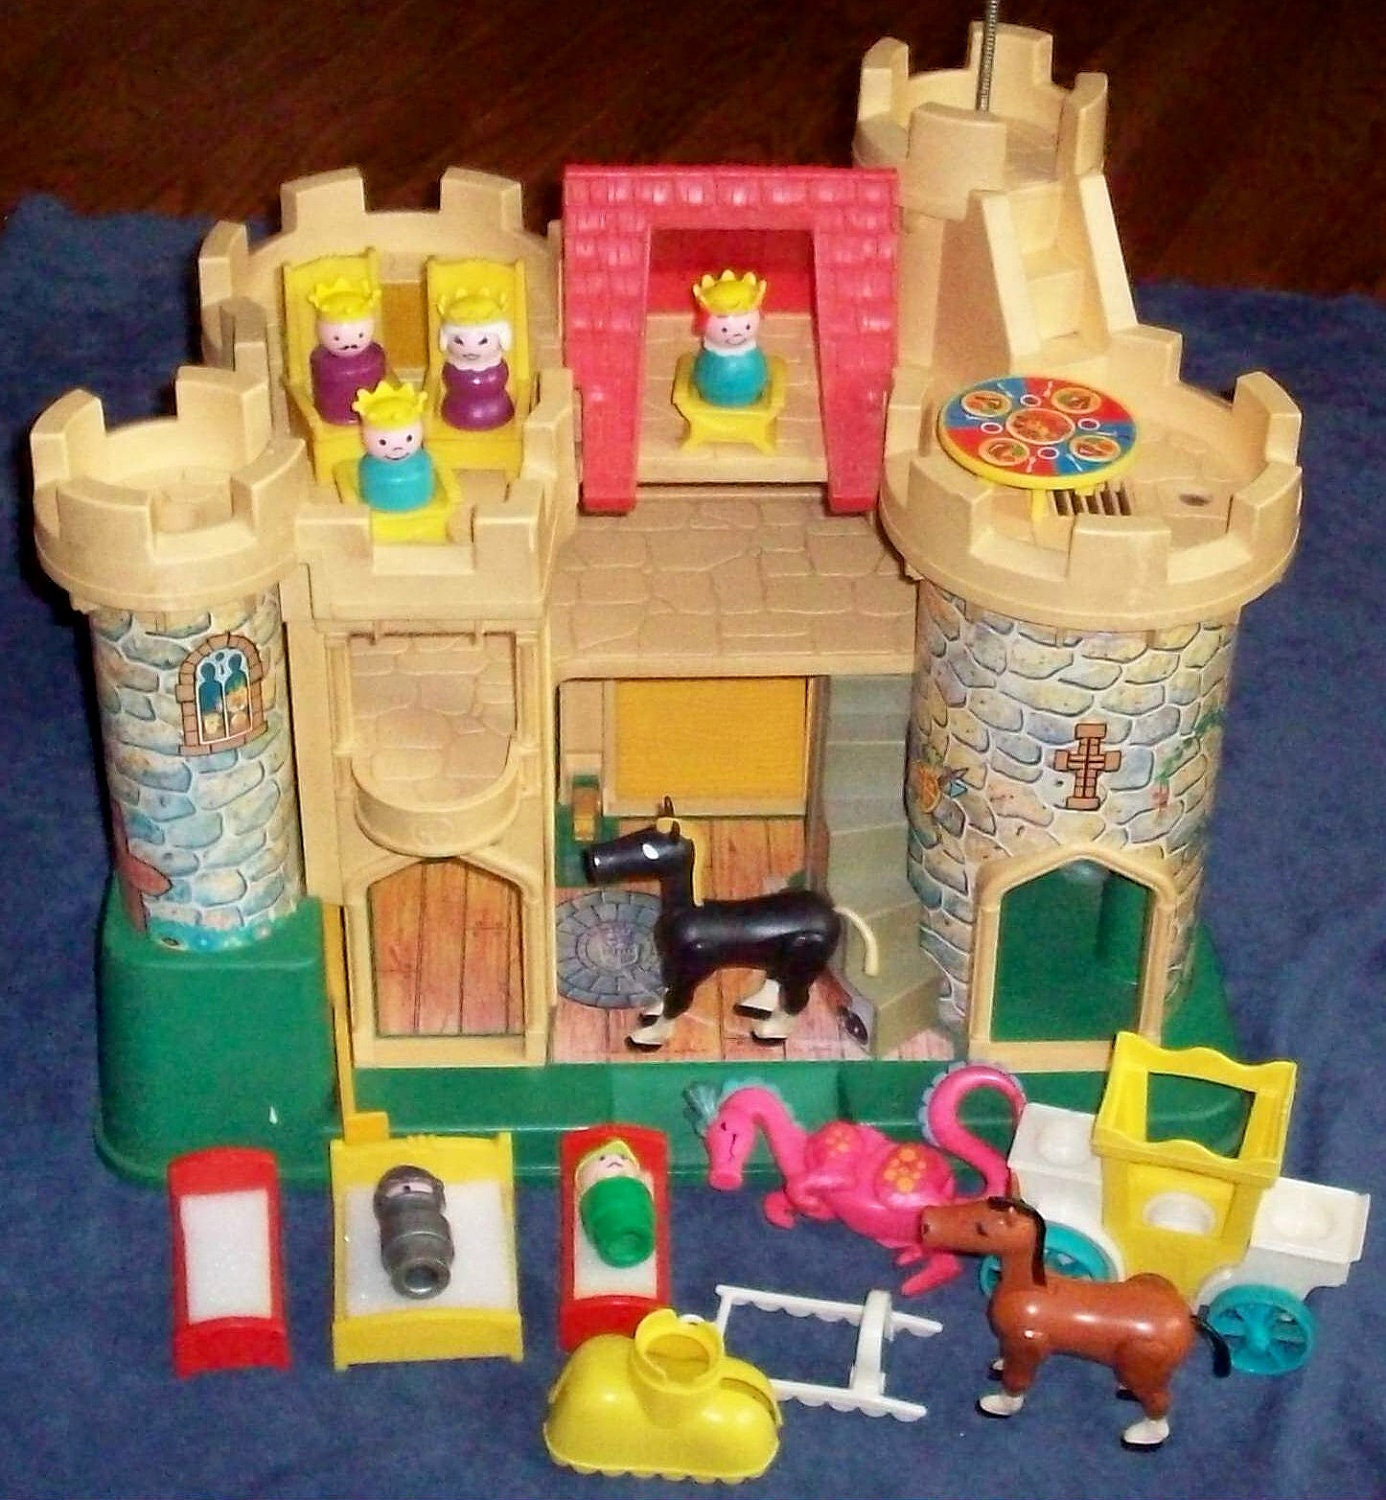 Pricing People: Fisher-Price Toy 993 Little People Play Castle By Tedsfptoys